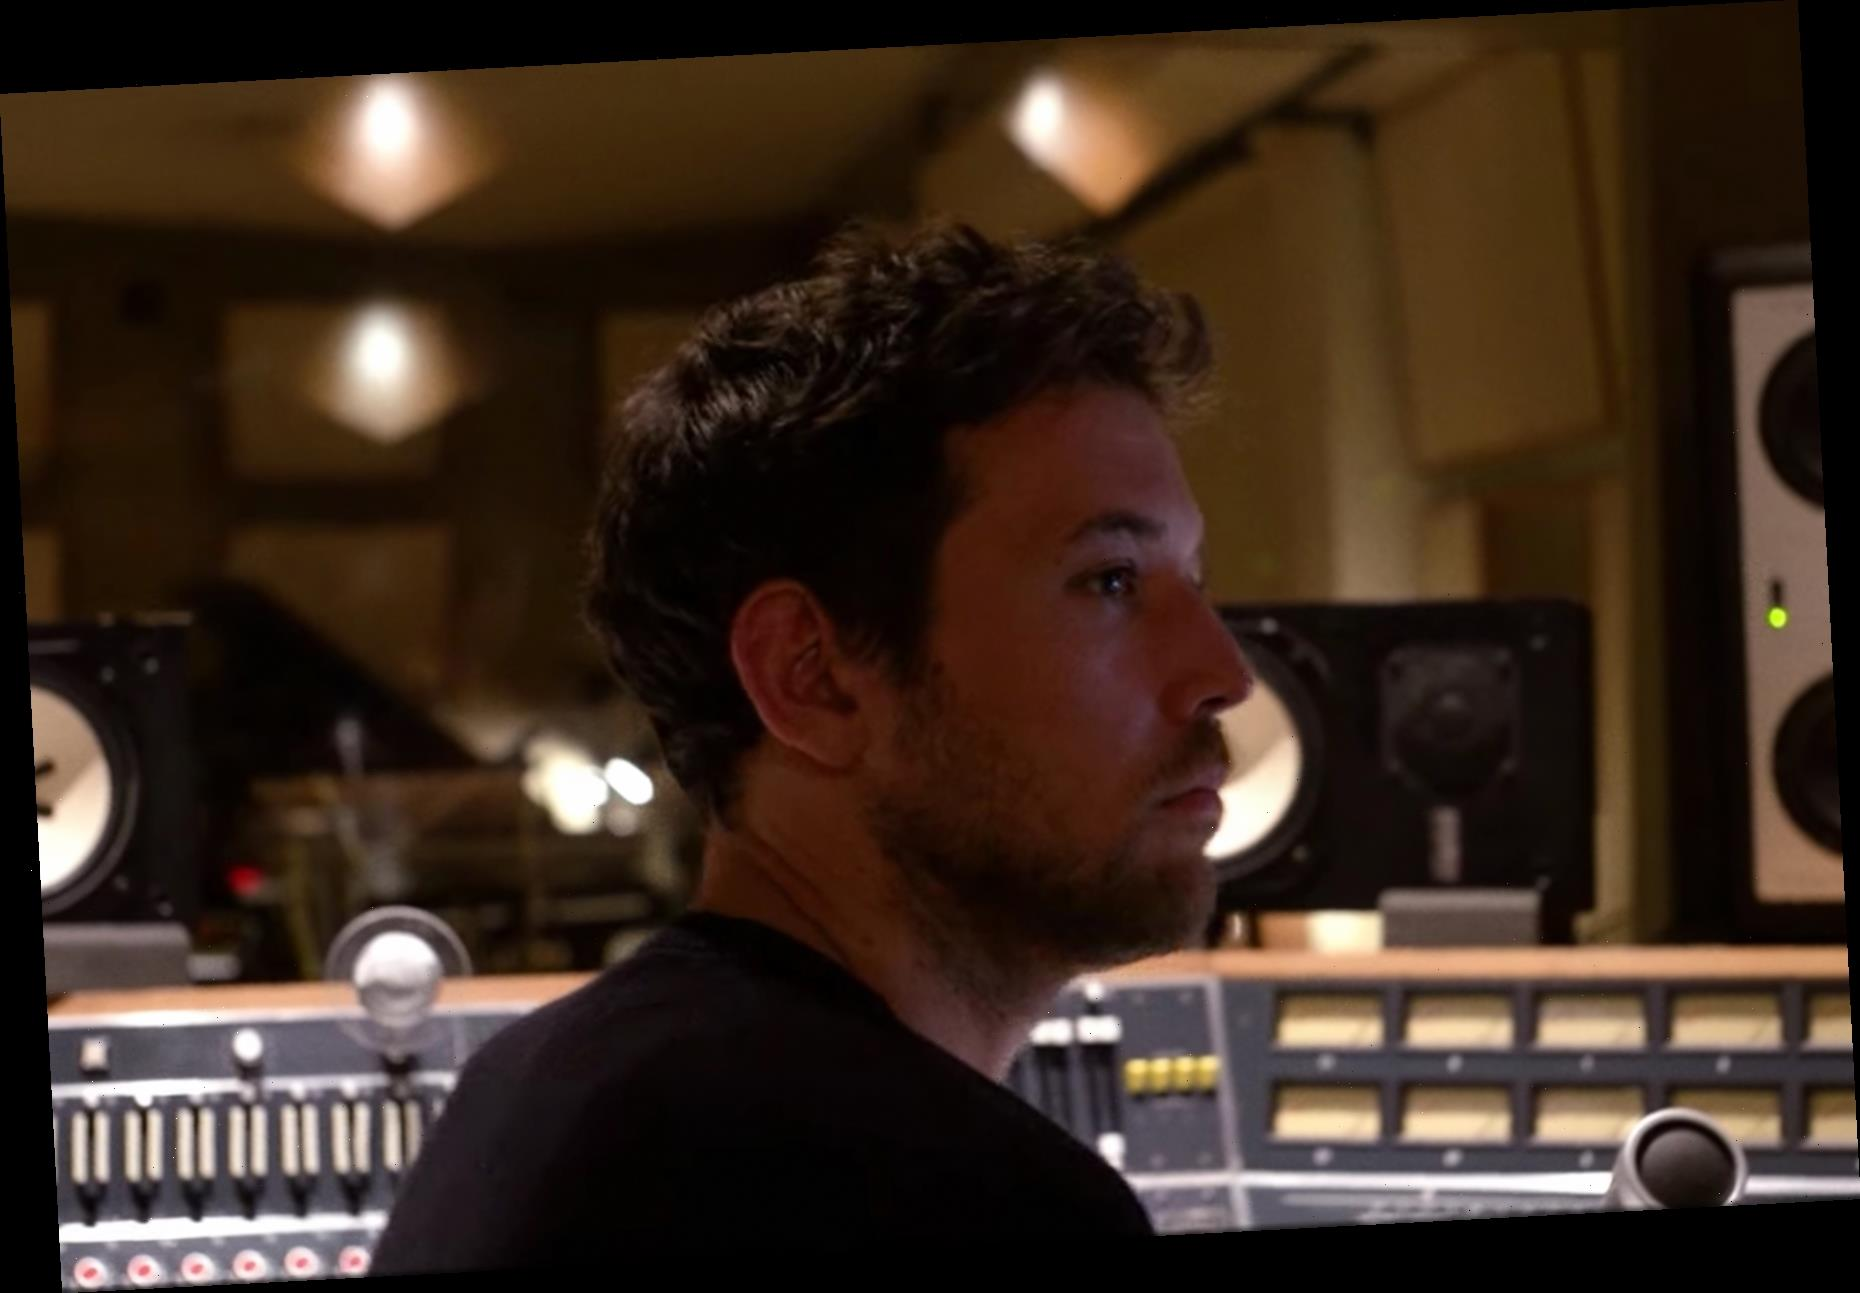 Fleet Foxes Offer Behind-the-Scenes Look at Recording Process in 'Sunblind' Video